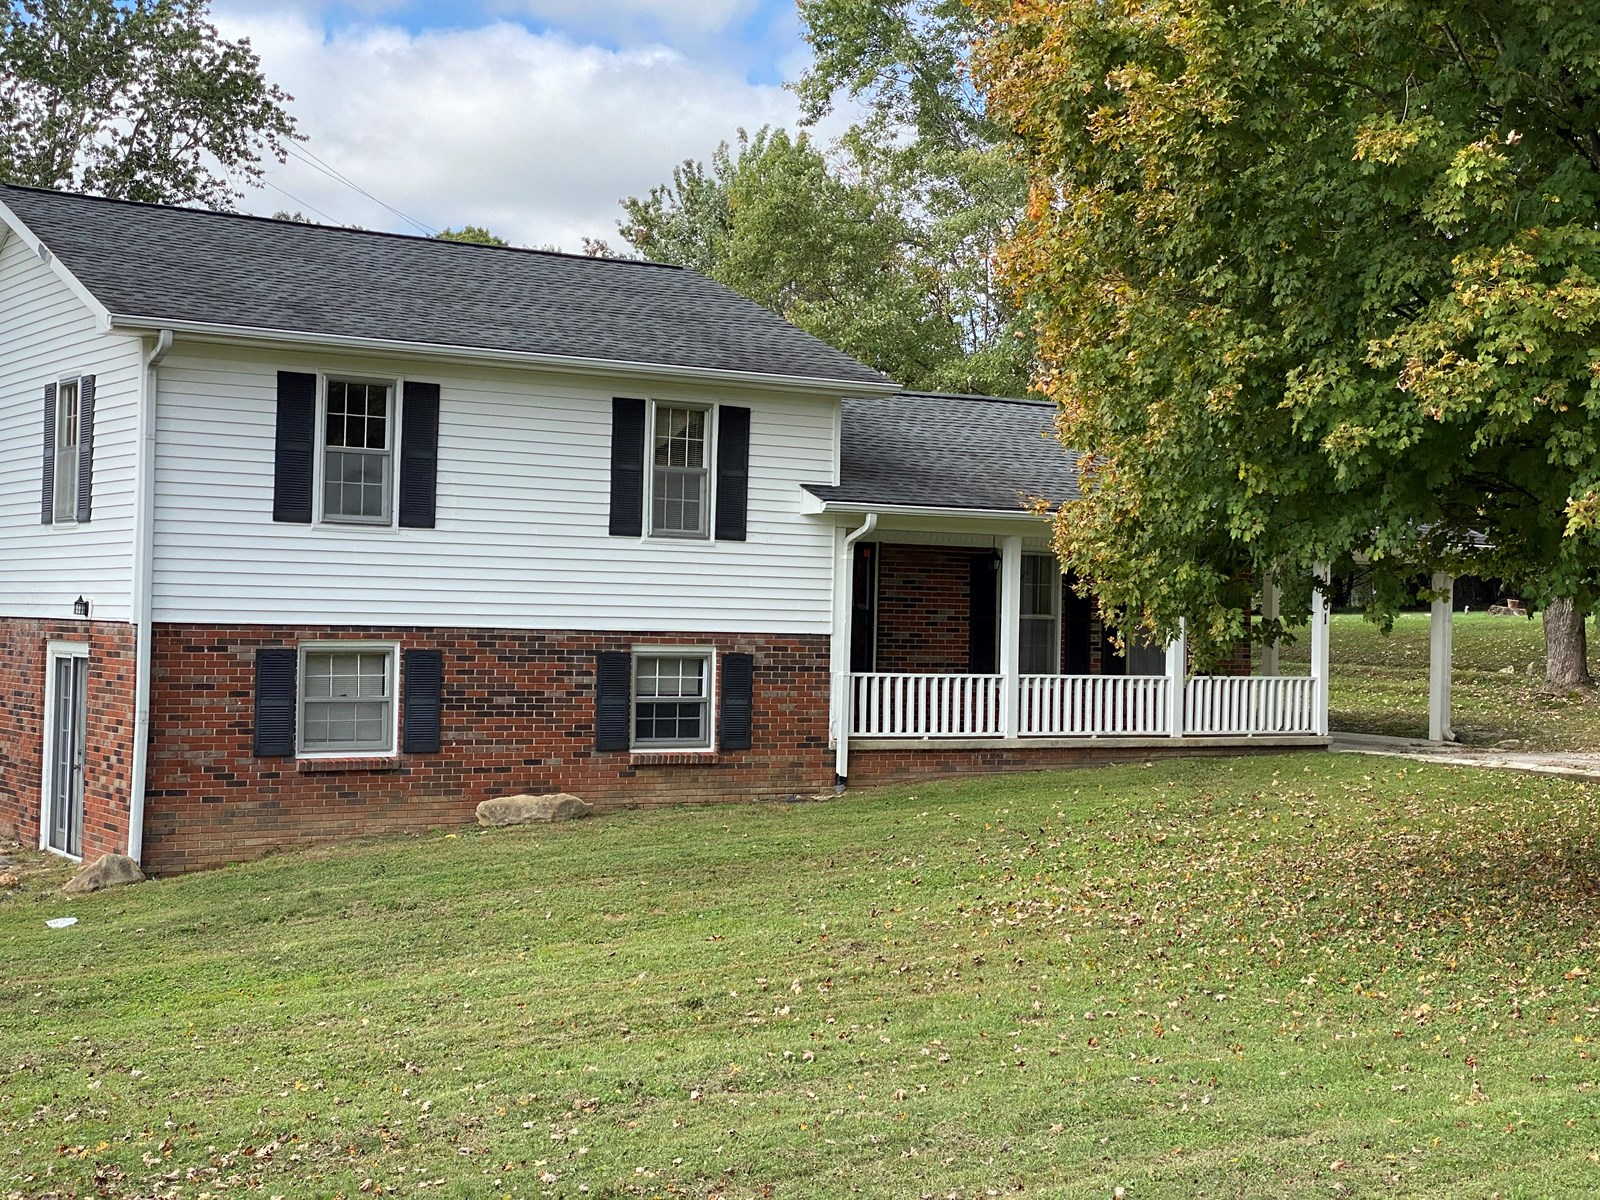 Home for Sale in Albany, KY